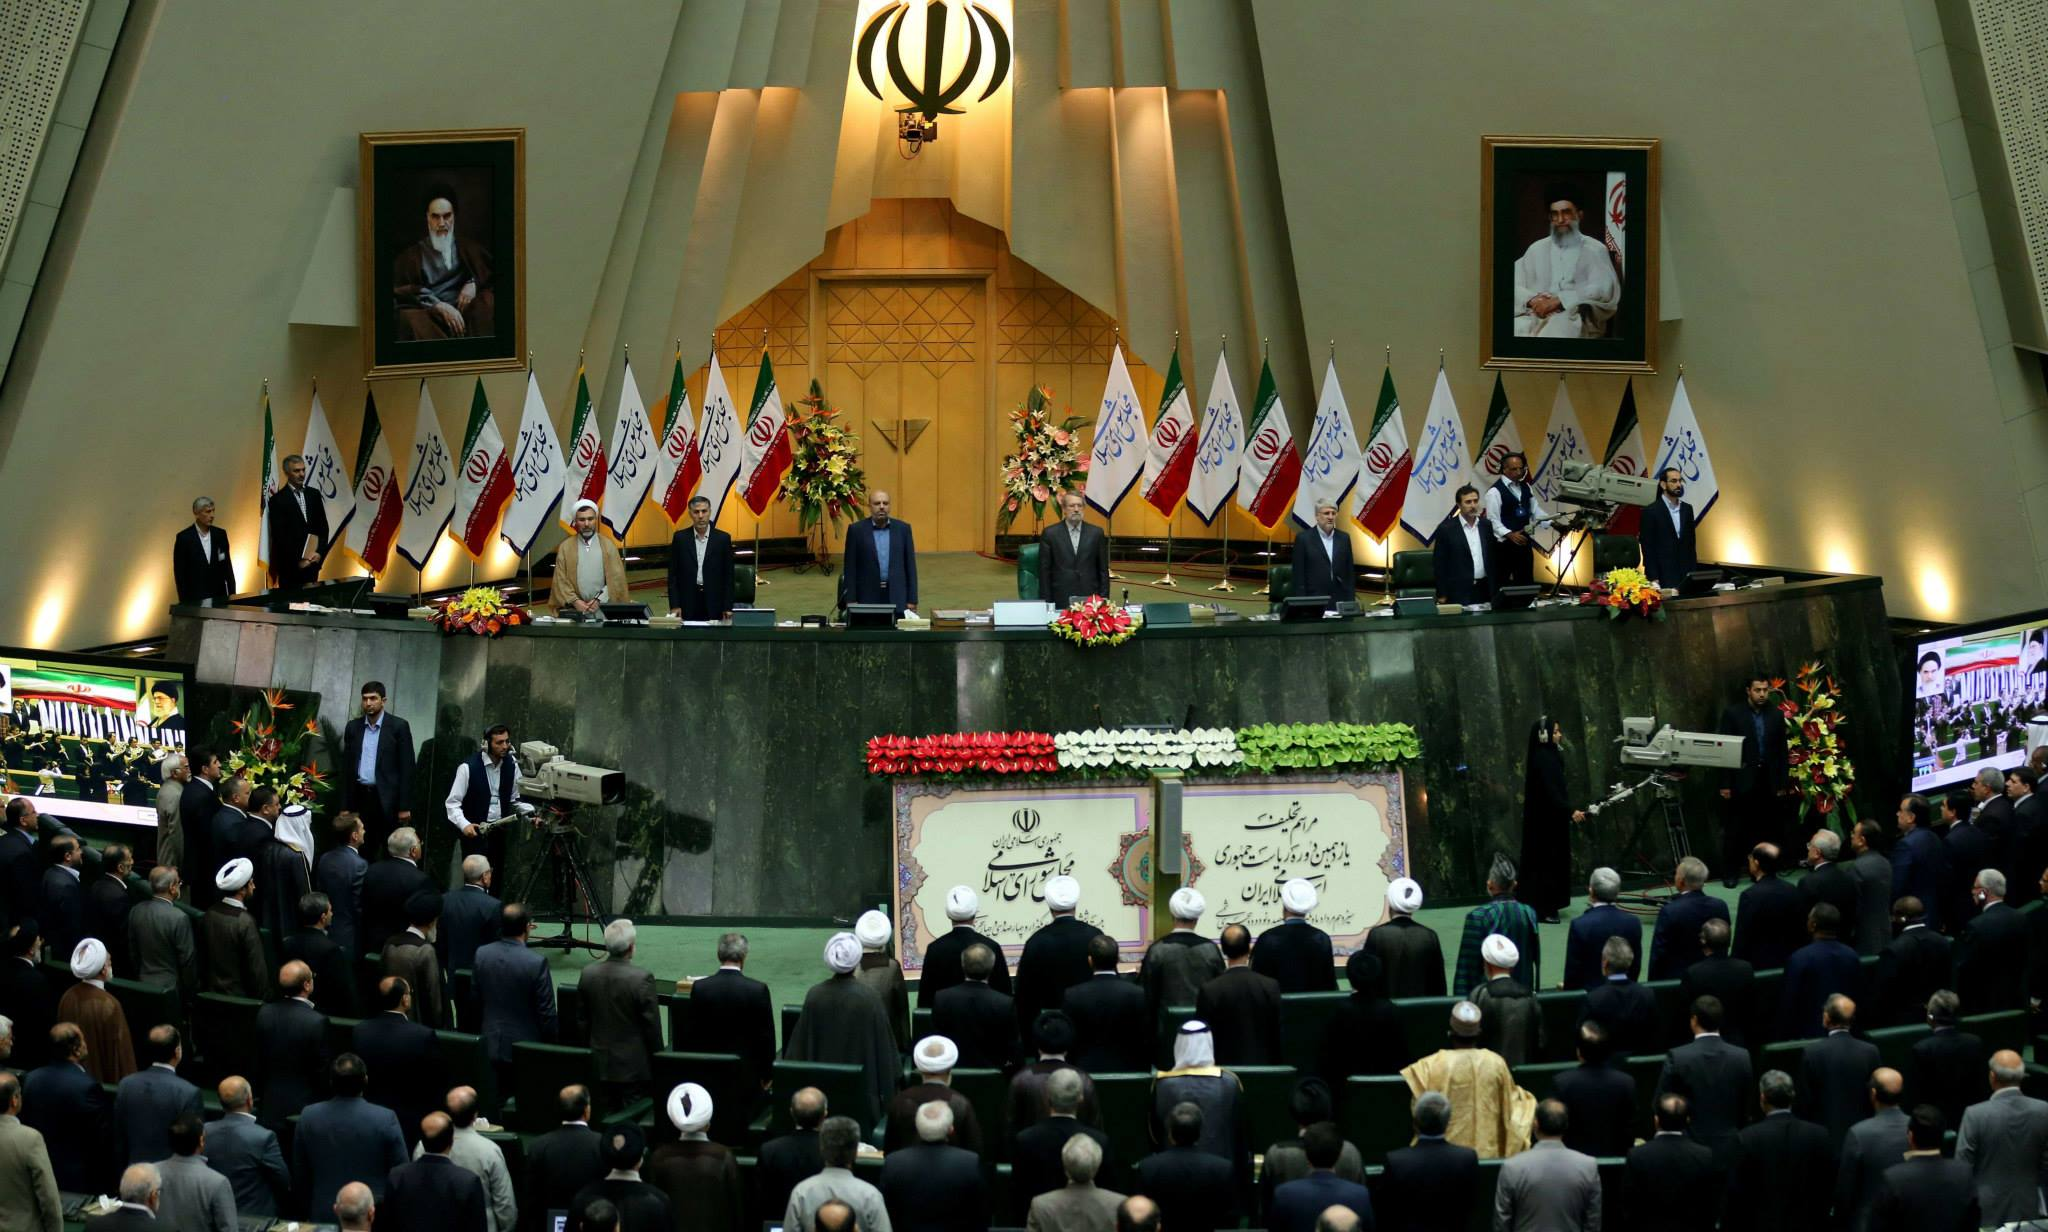 Photo of Photos- Iran's President Hasan Rowhani delivers a speech after being sworn in before parliament in Tehran on August 4, 2013